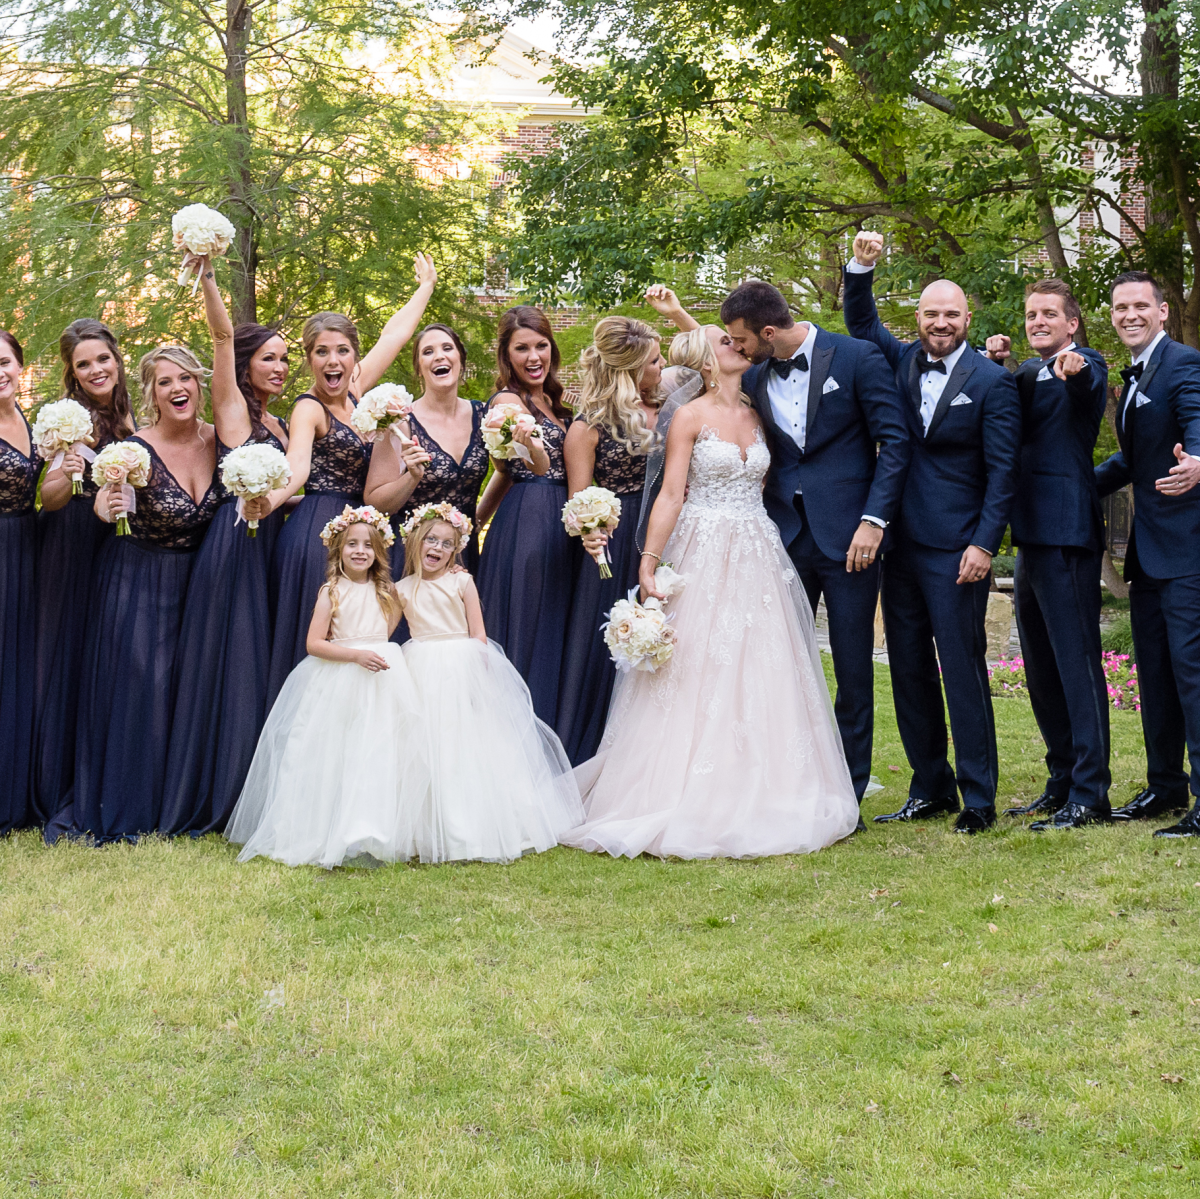 Neely Dinner, bridal party